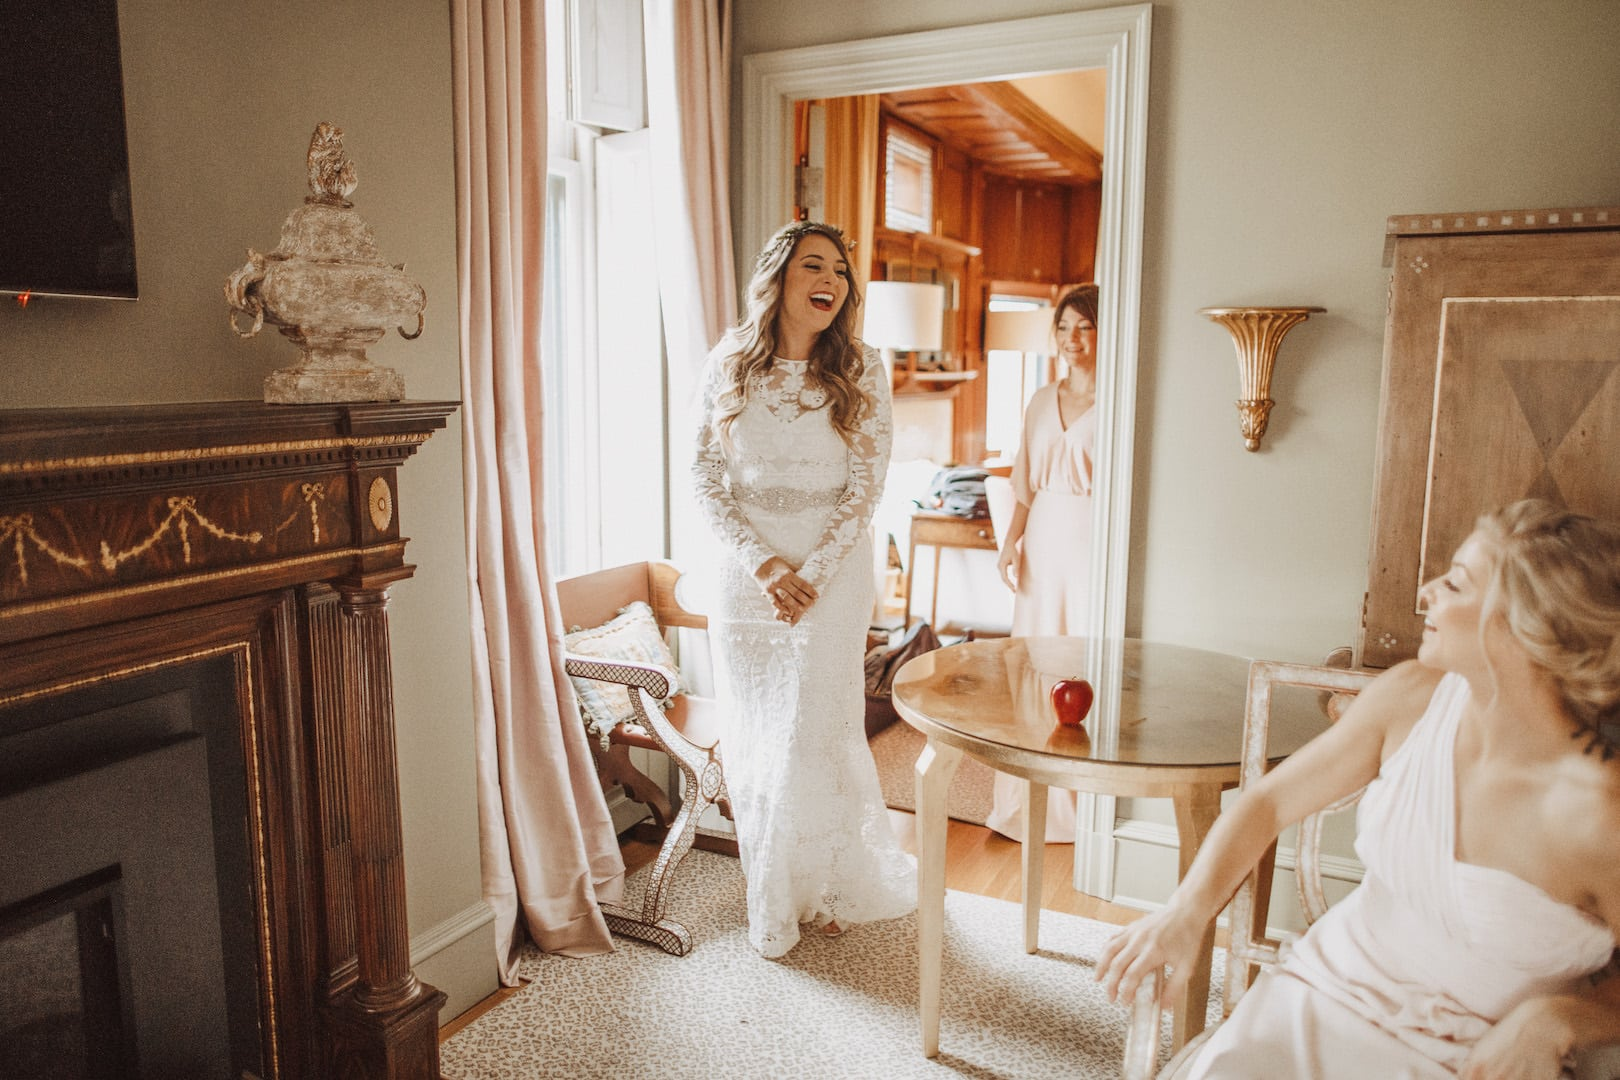 Bride laughing with bridesmaids in hotel suite